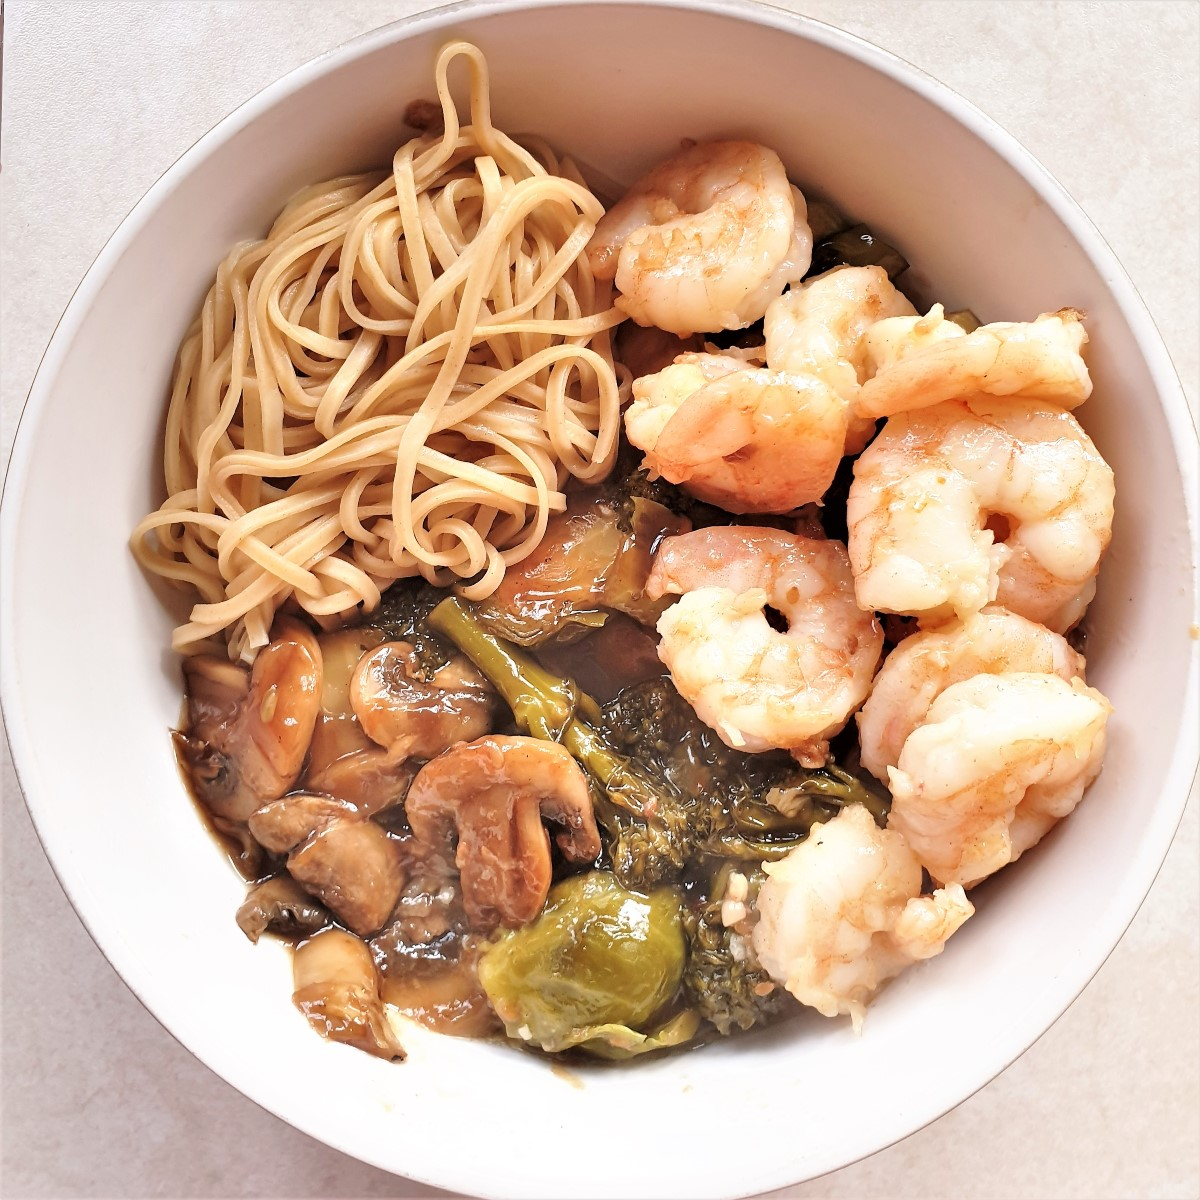 A bowl of honey garlic shrimp with saucy steamed vegetables and noodles.